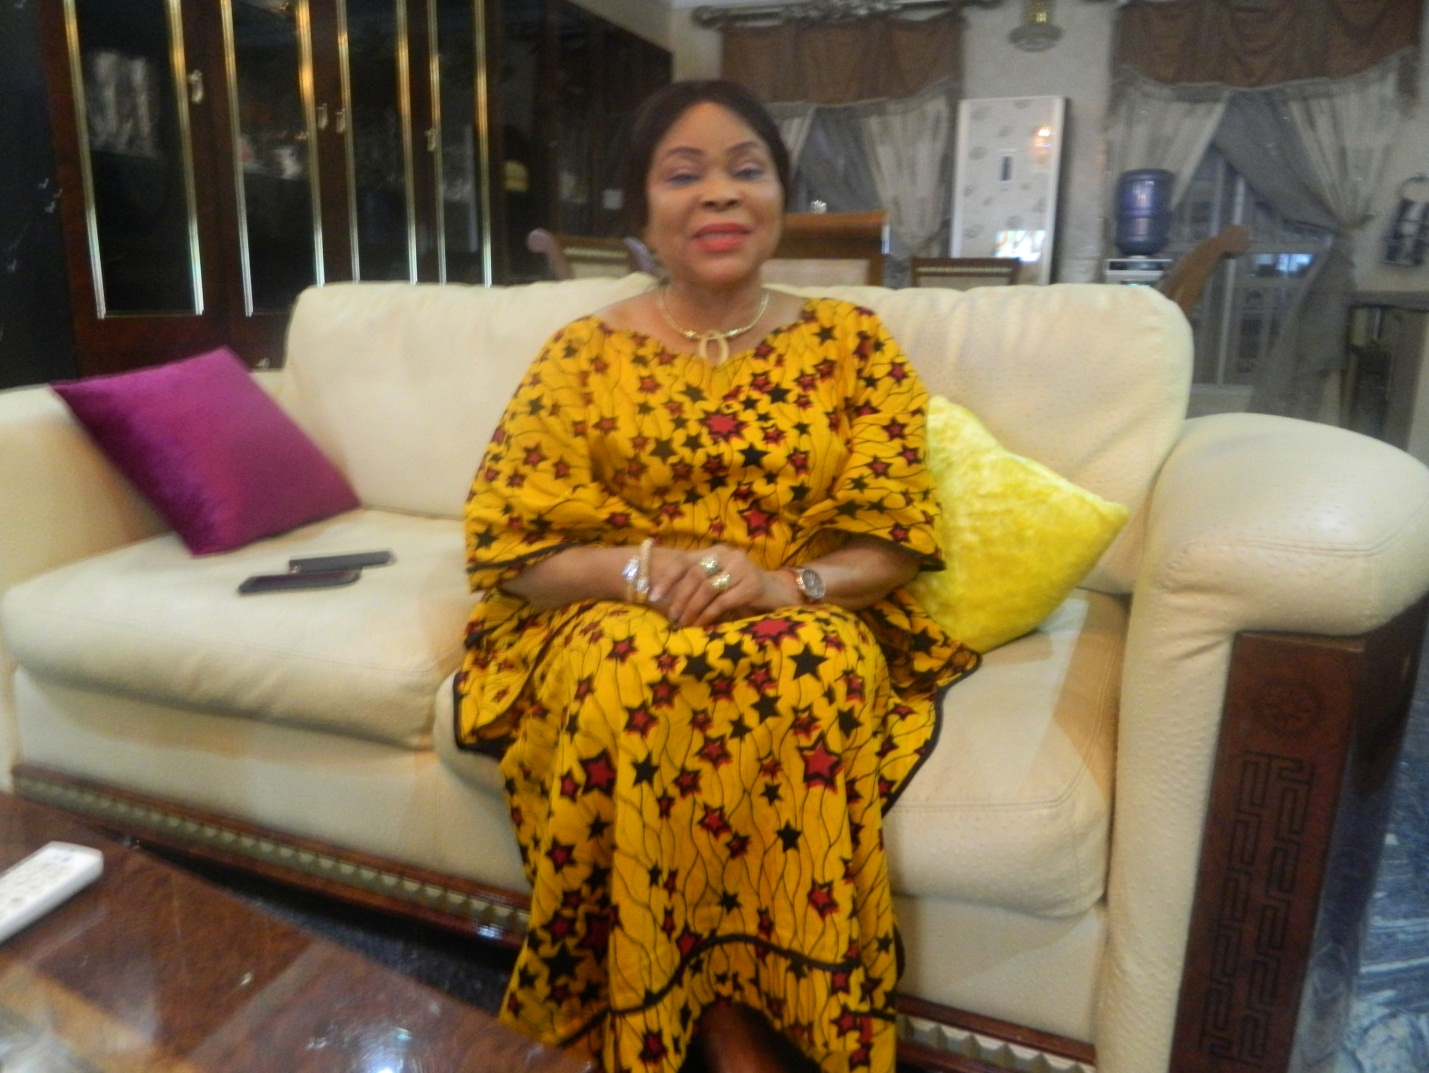 There must be restructuring, but – Senator Nwaogu